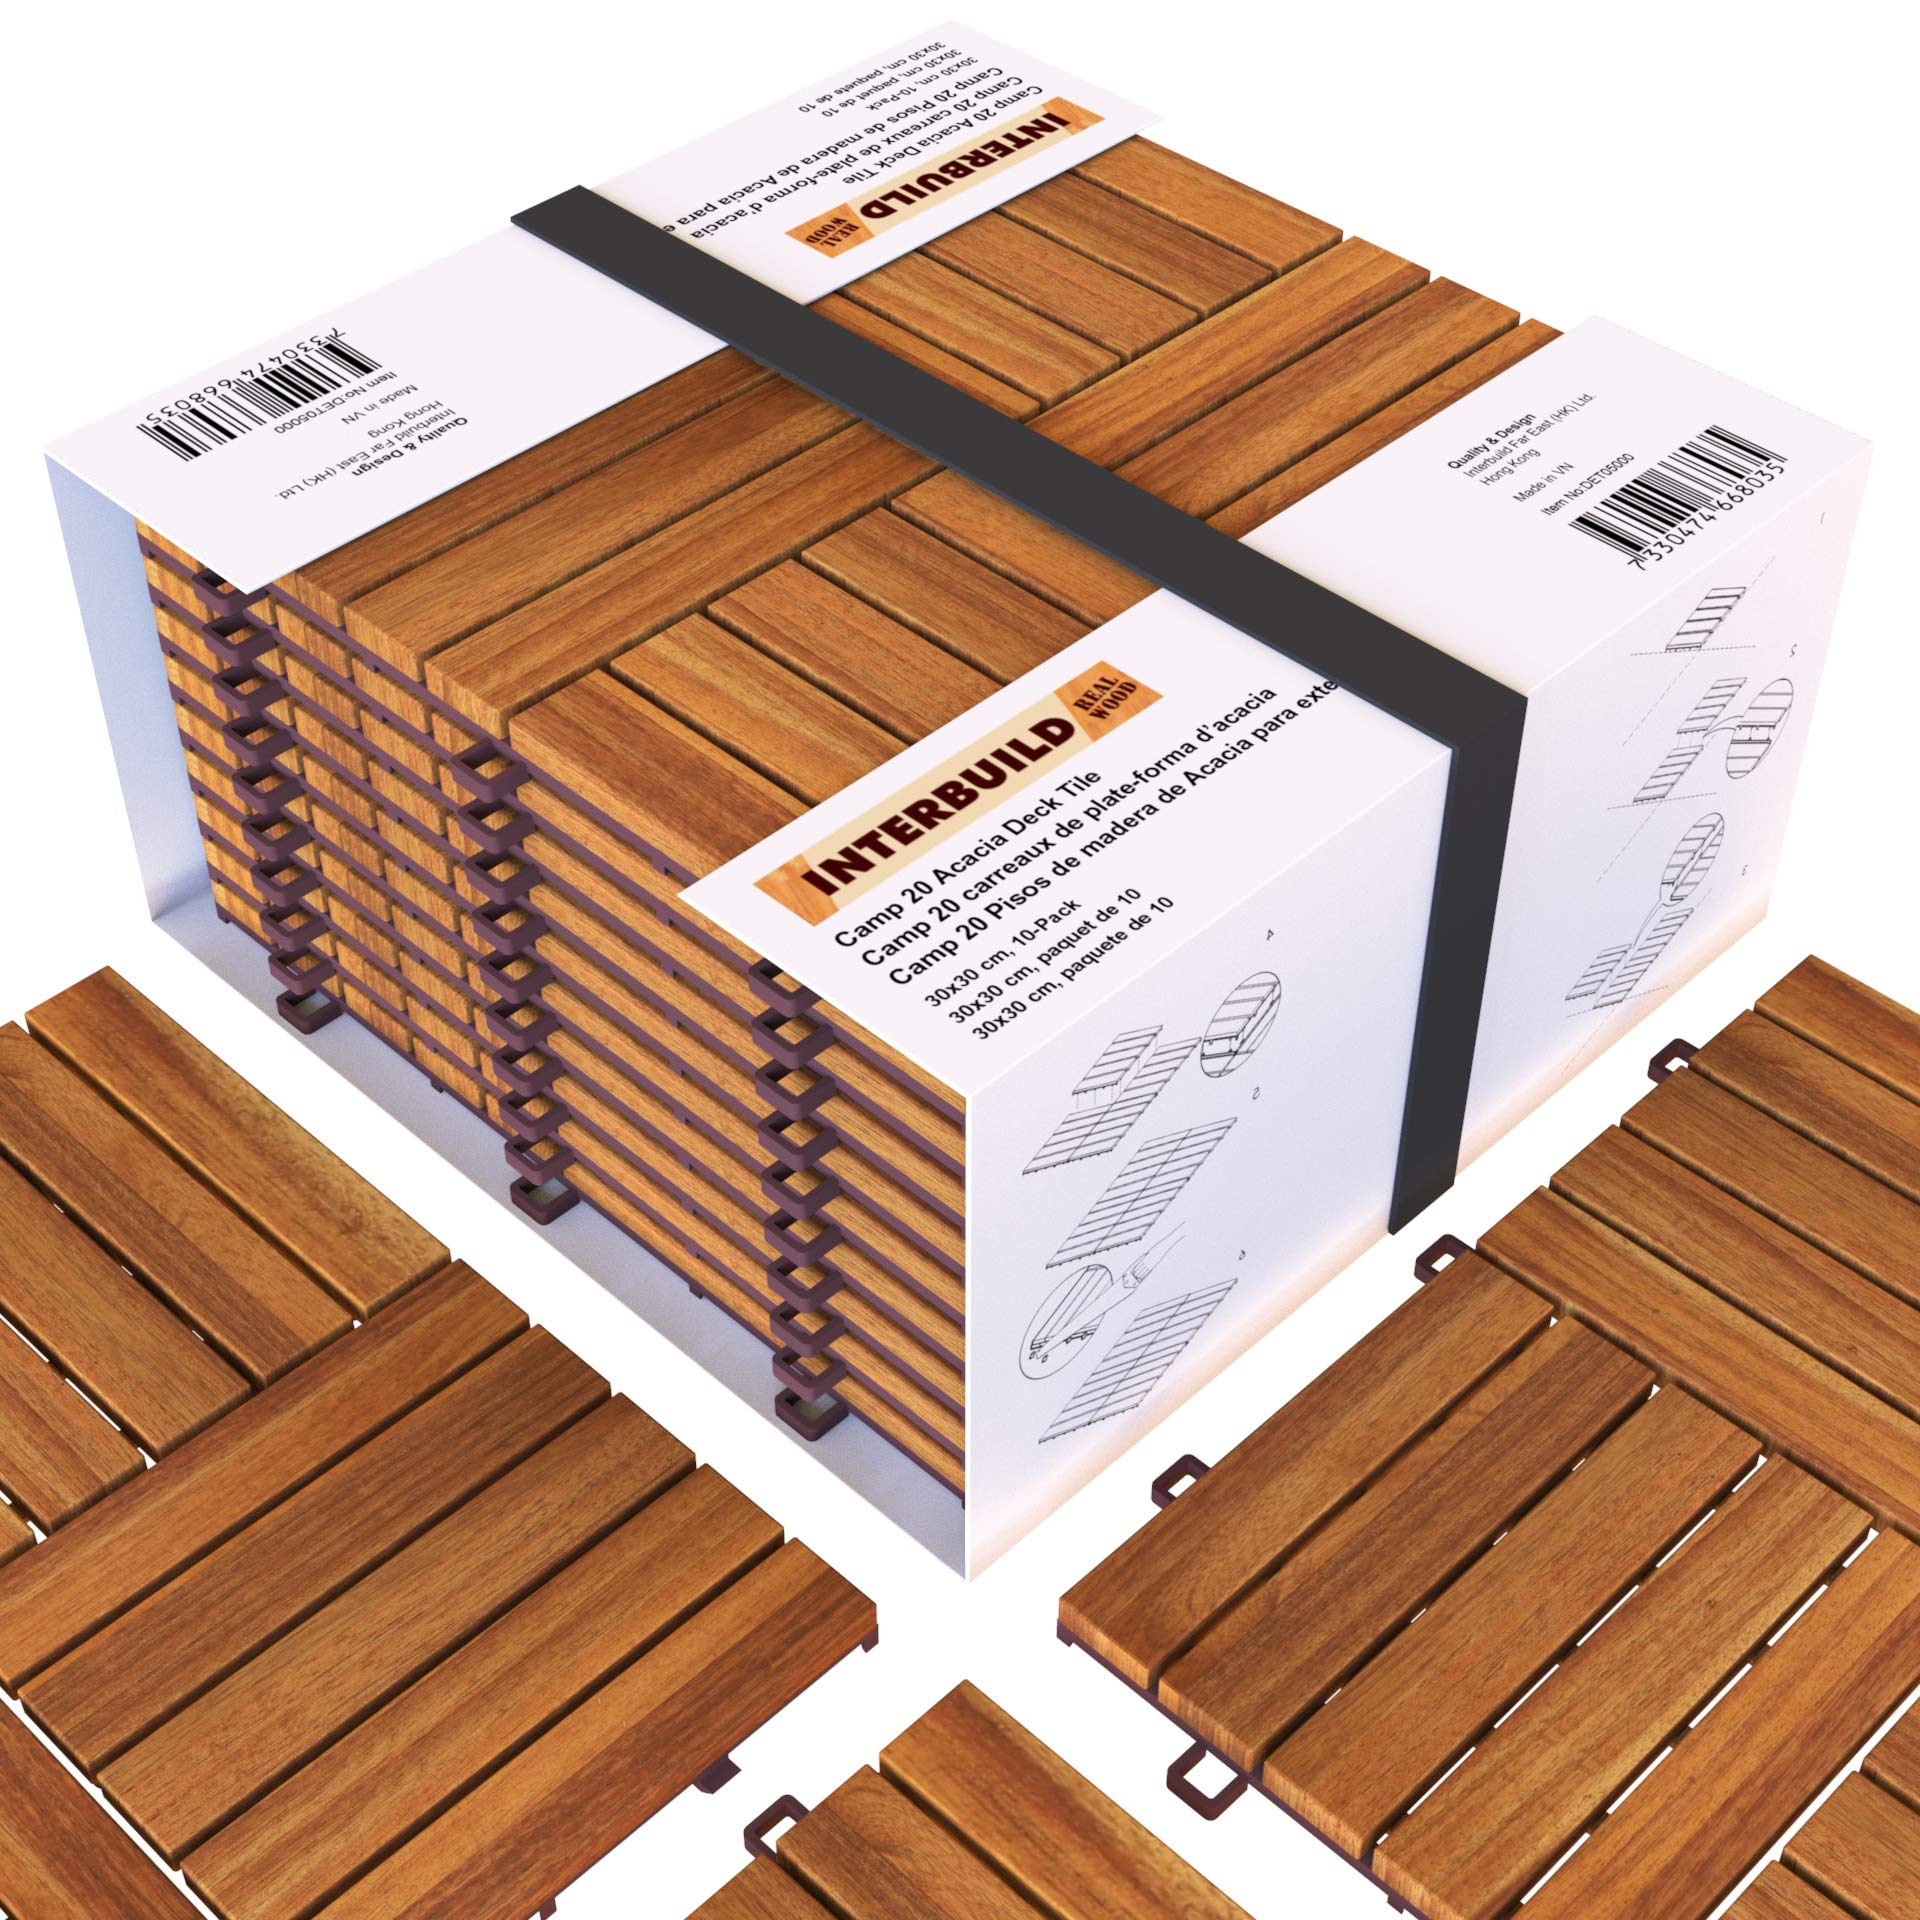 Acacia Hardwood Deck and Patio Easy to Install Interlocking Flooring Tiles 12''×12'' - 10 TILES / PACK - Totally 10 Sq. Ft.